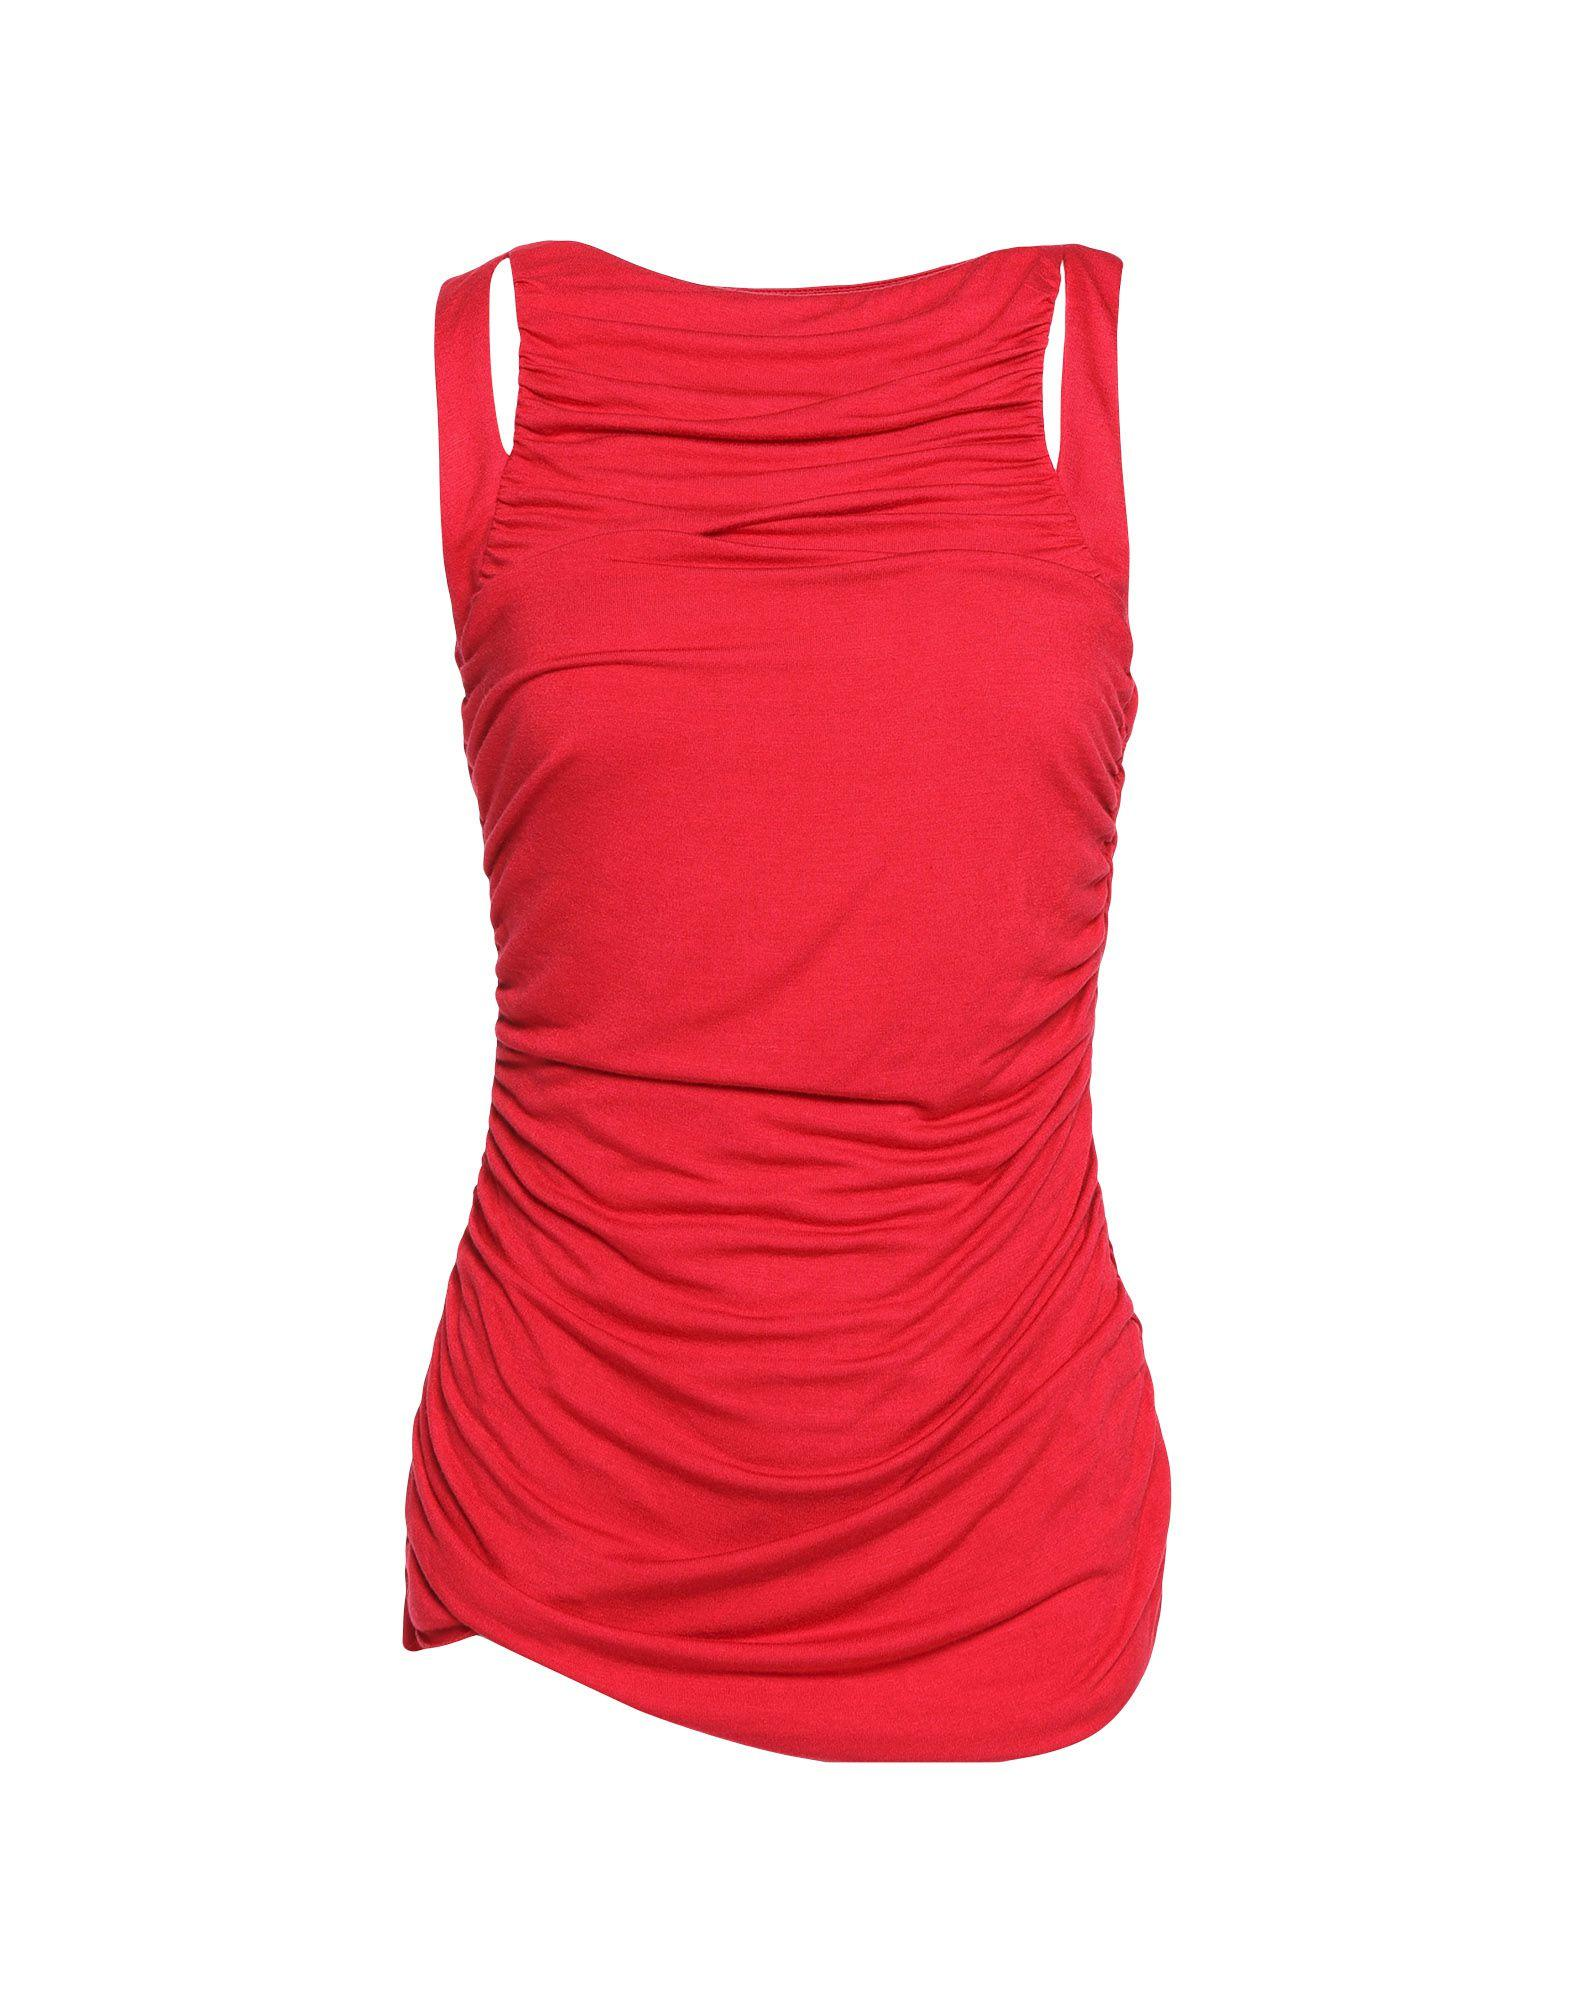 Bailey44 Top In Red